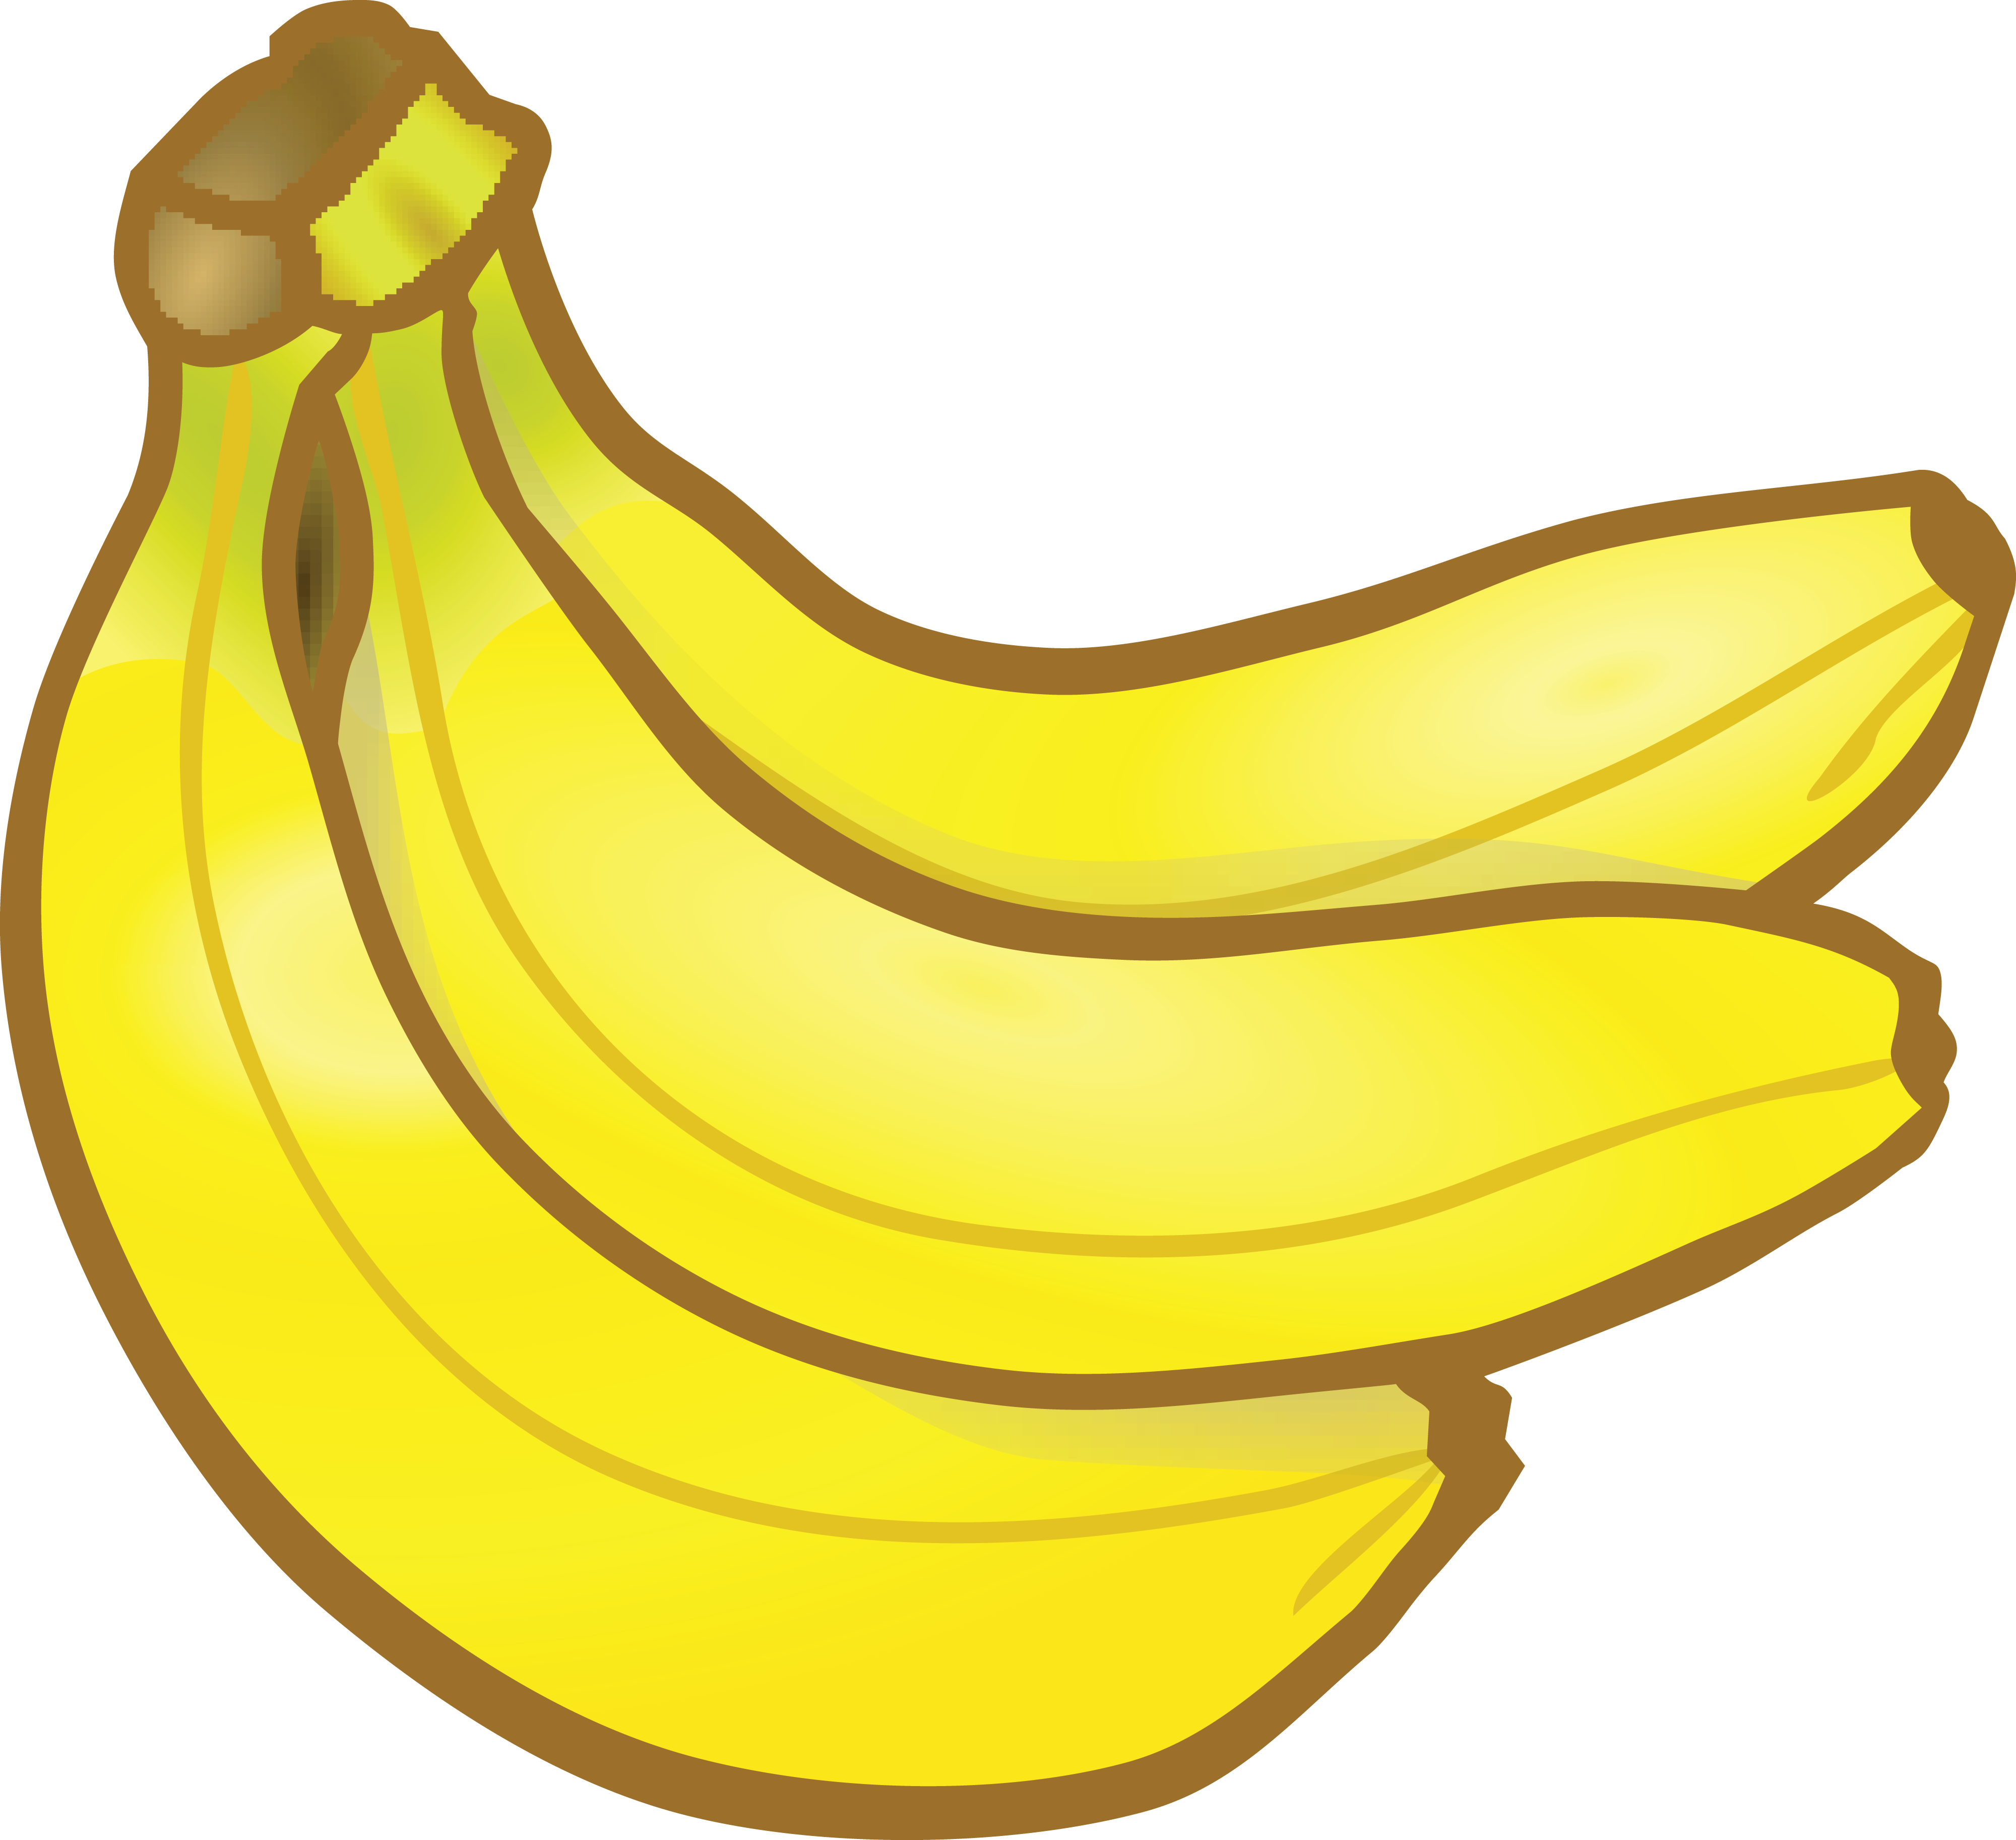 Bananas clipart double. Hd free of a